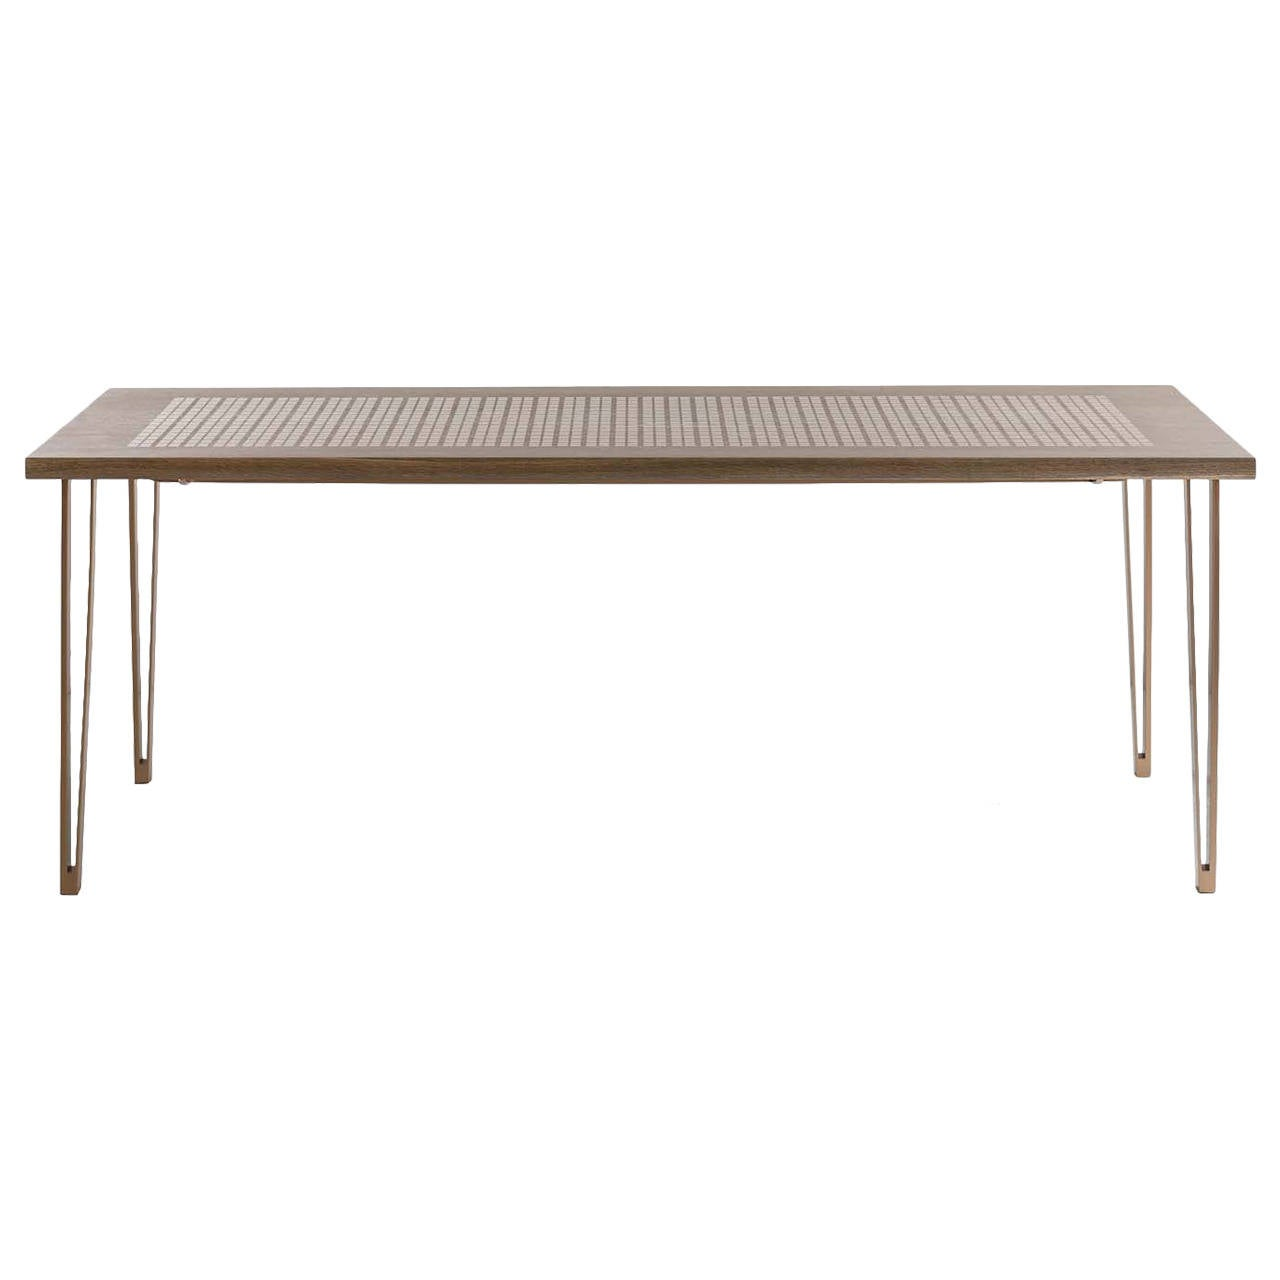 Baer Table with Marquetry, Fumed White Oak, Silicon Bronze Inlay and Base For Sale